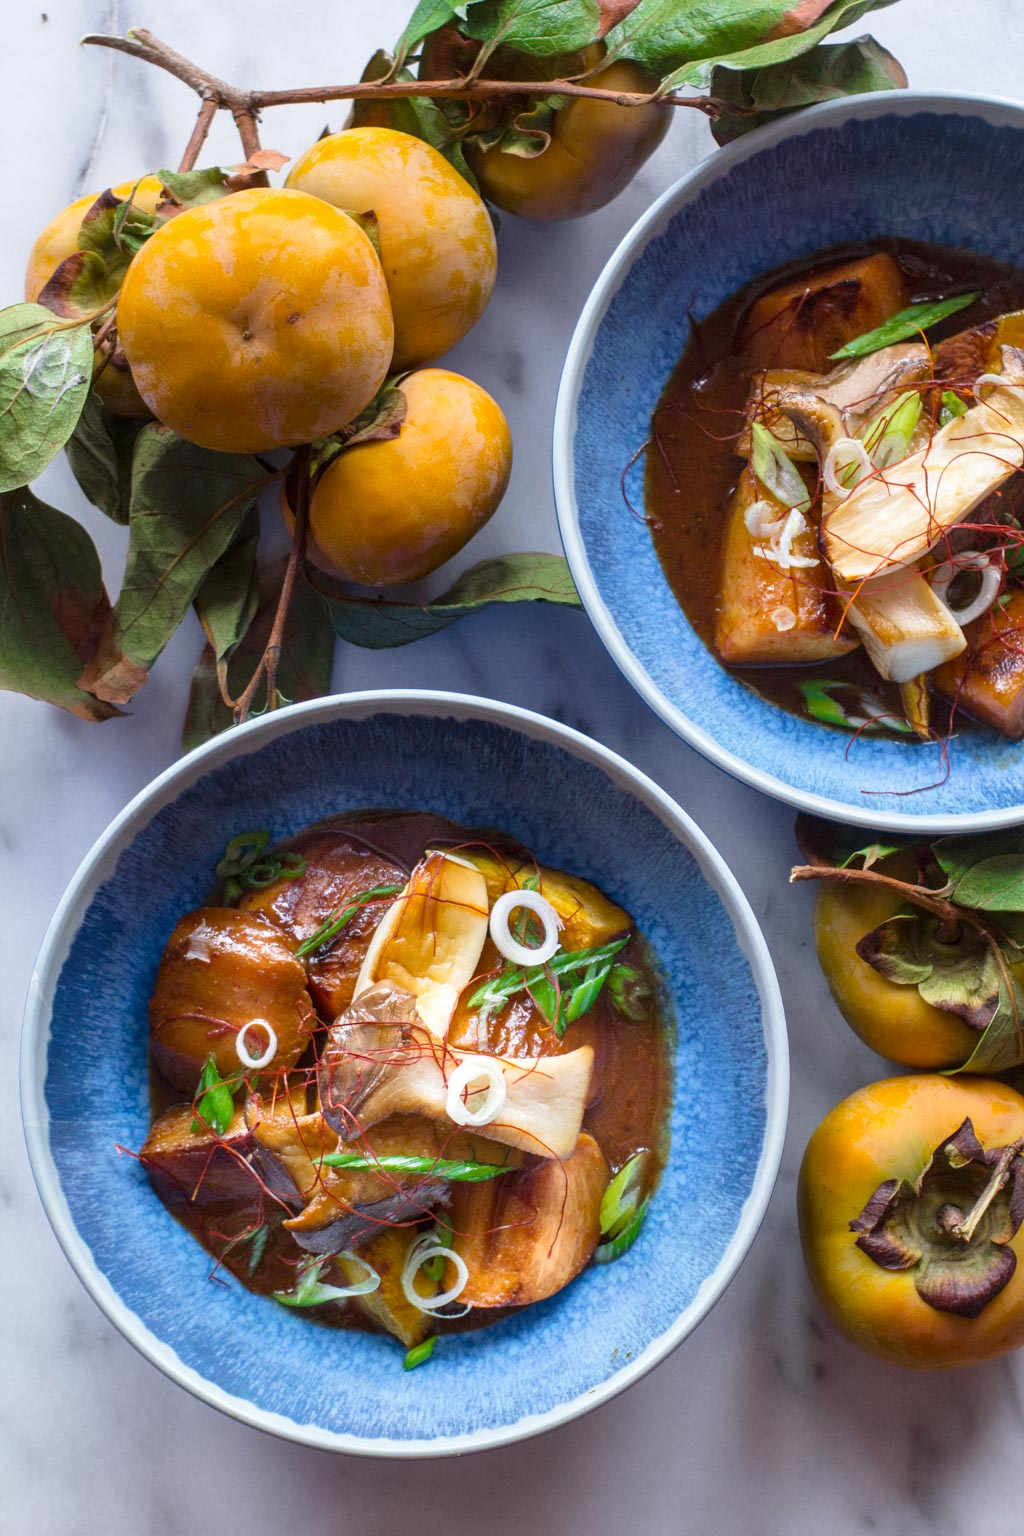 Braised Persimmon and Oyster Mushrooms with miso sake glaze